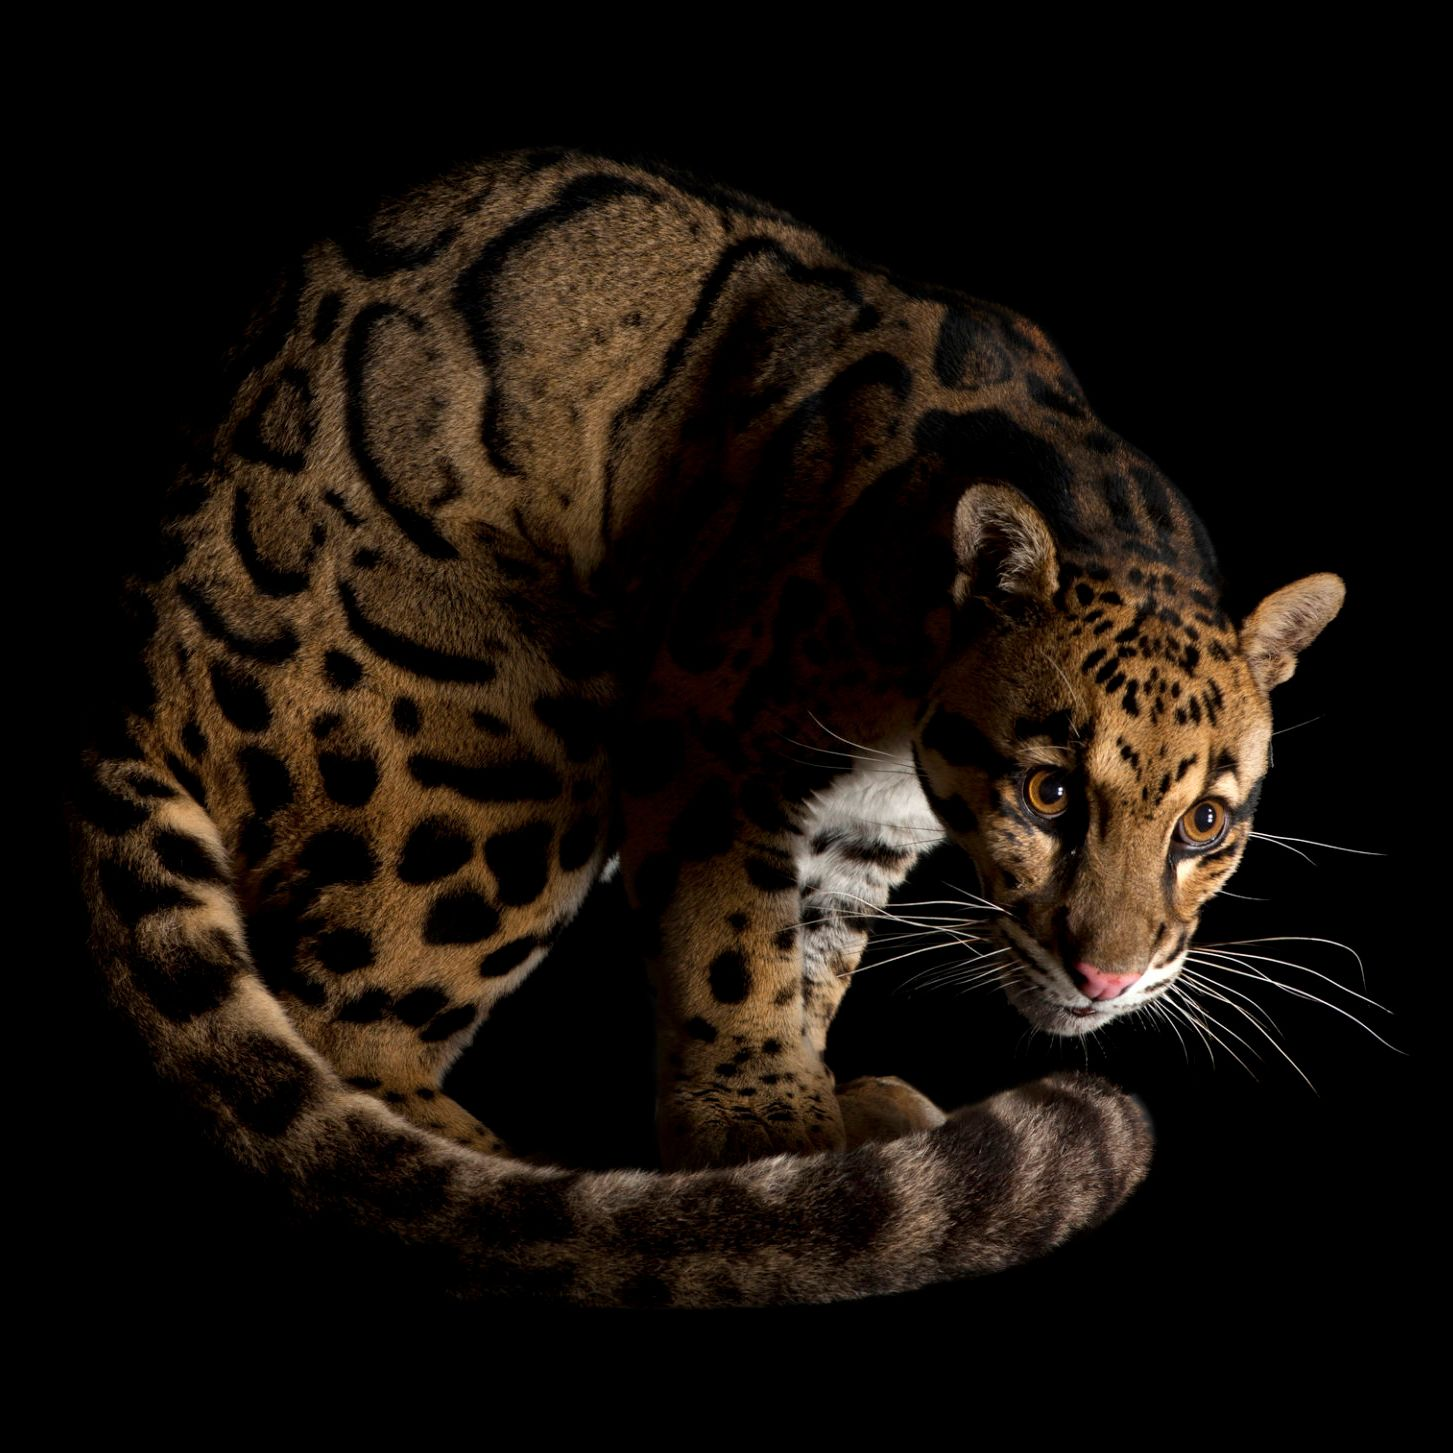 Clouded leopard (Neofelis nebulosa). A vulnerable (IUCN